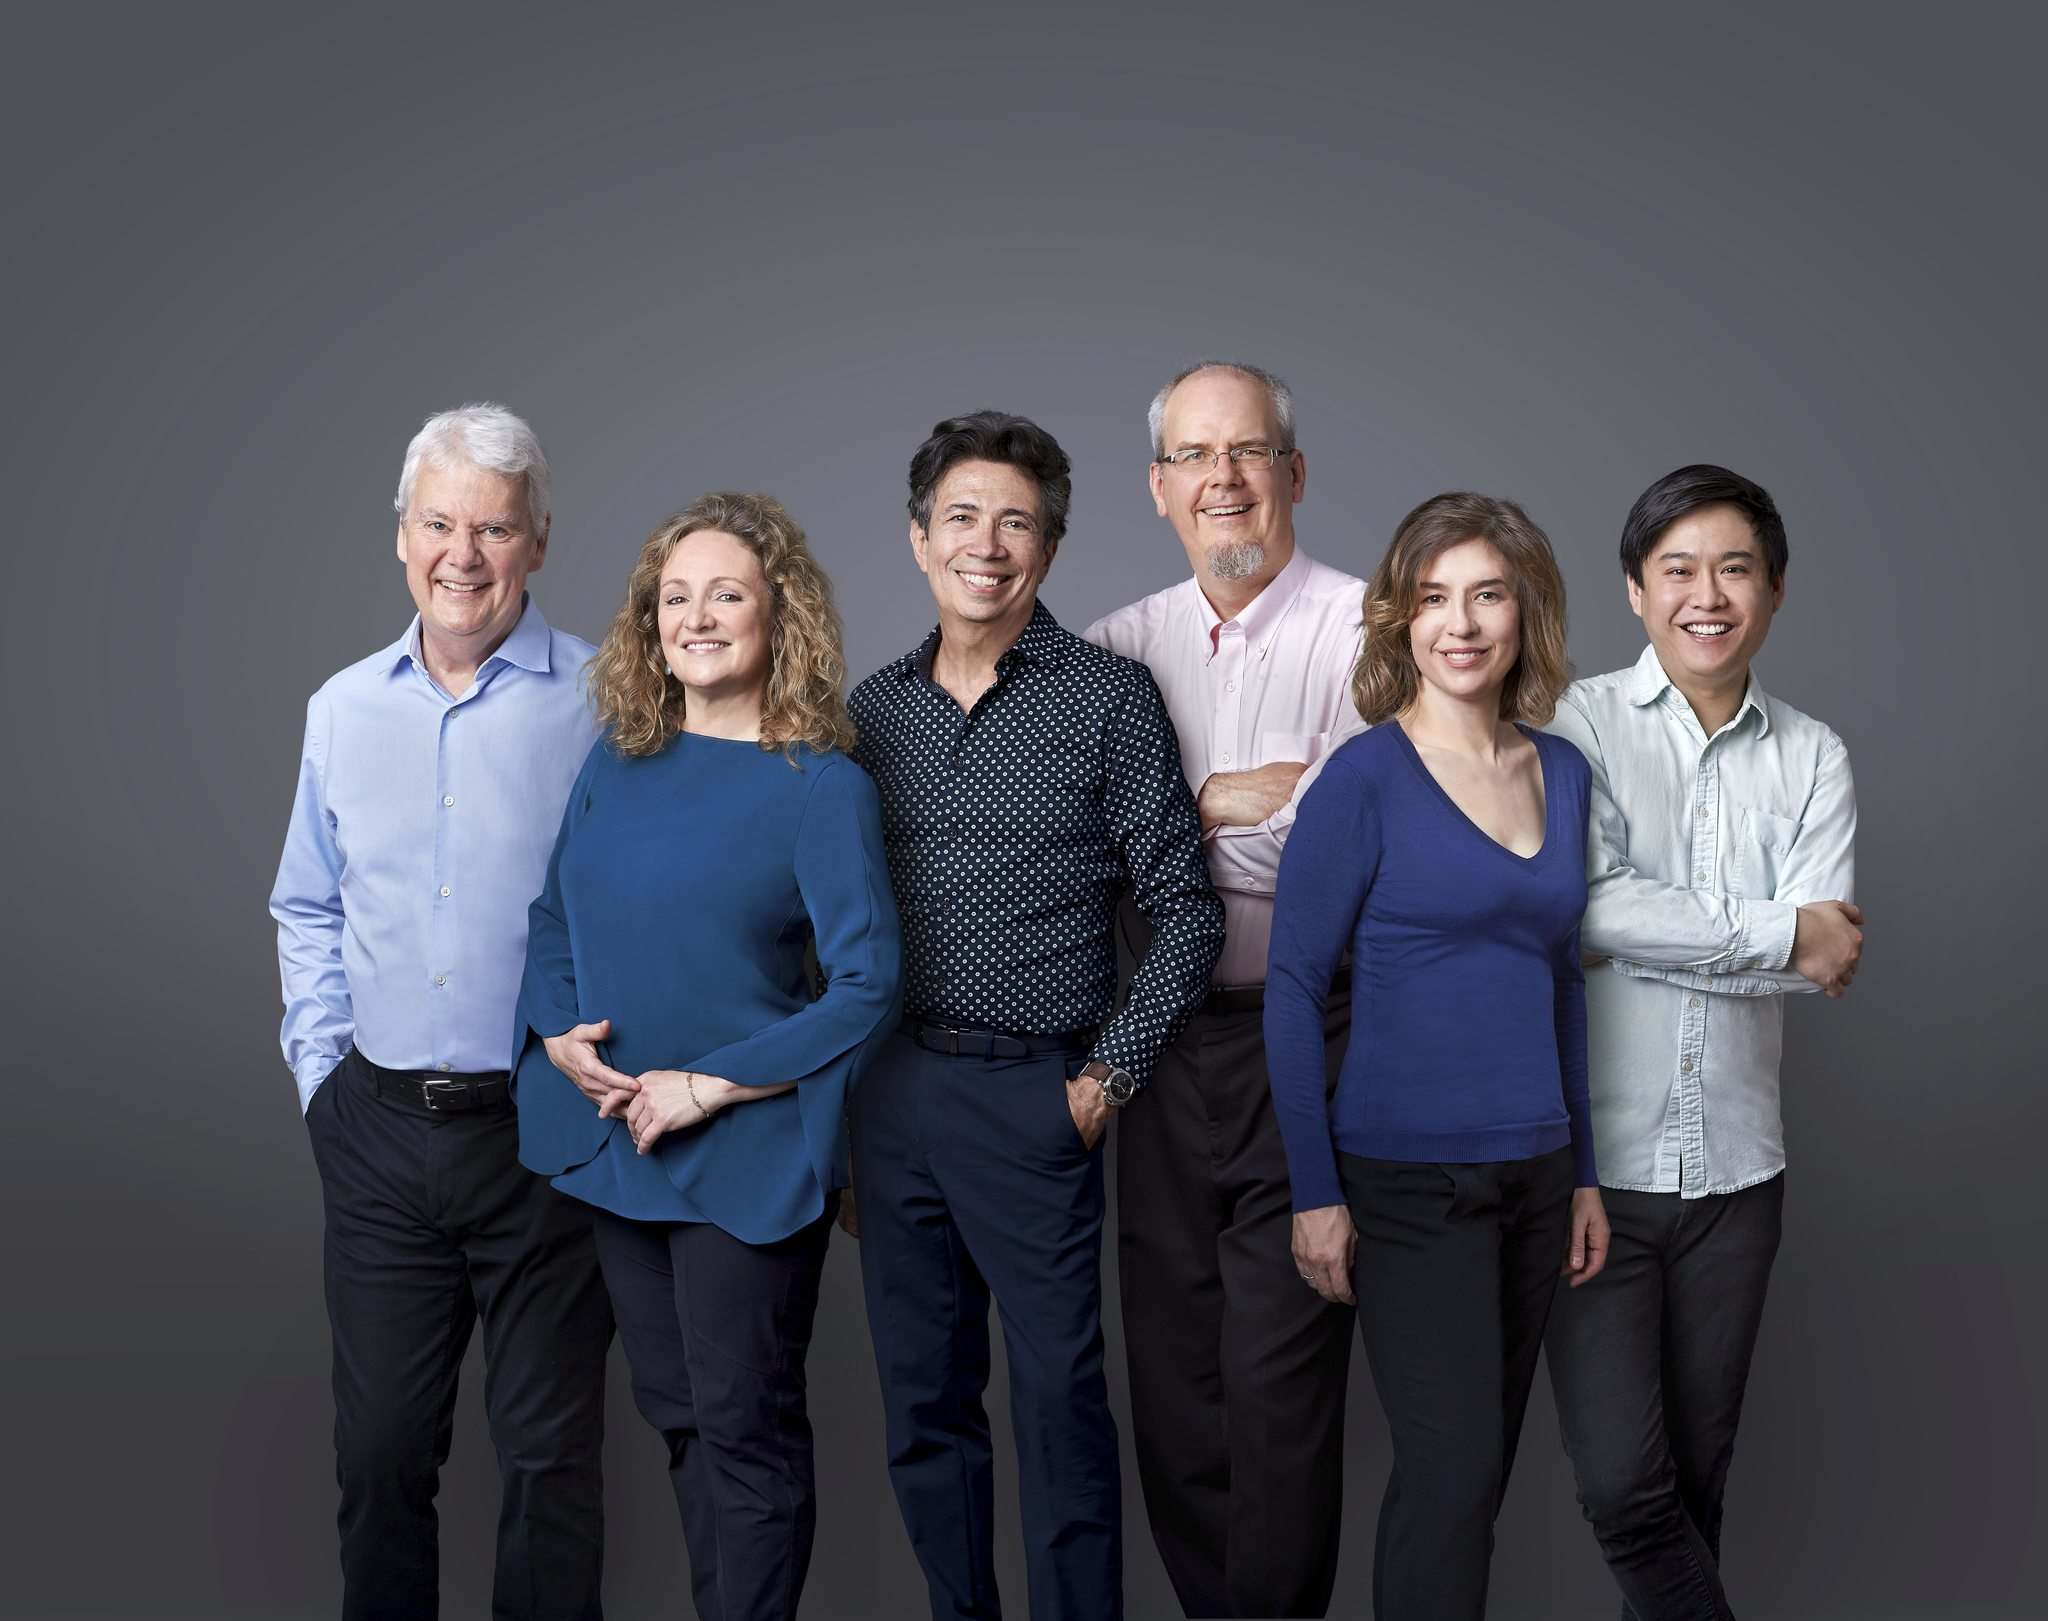 The Artists of the Royal Conservatory ensemble. The group specializes in recovering suppressed music and has earned three Grammy nominations for previous recordings by composers whose lives were affected by the Holocaust.